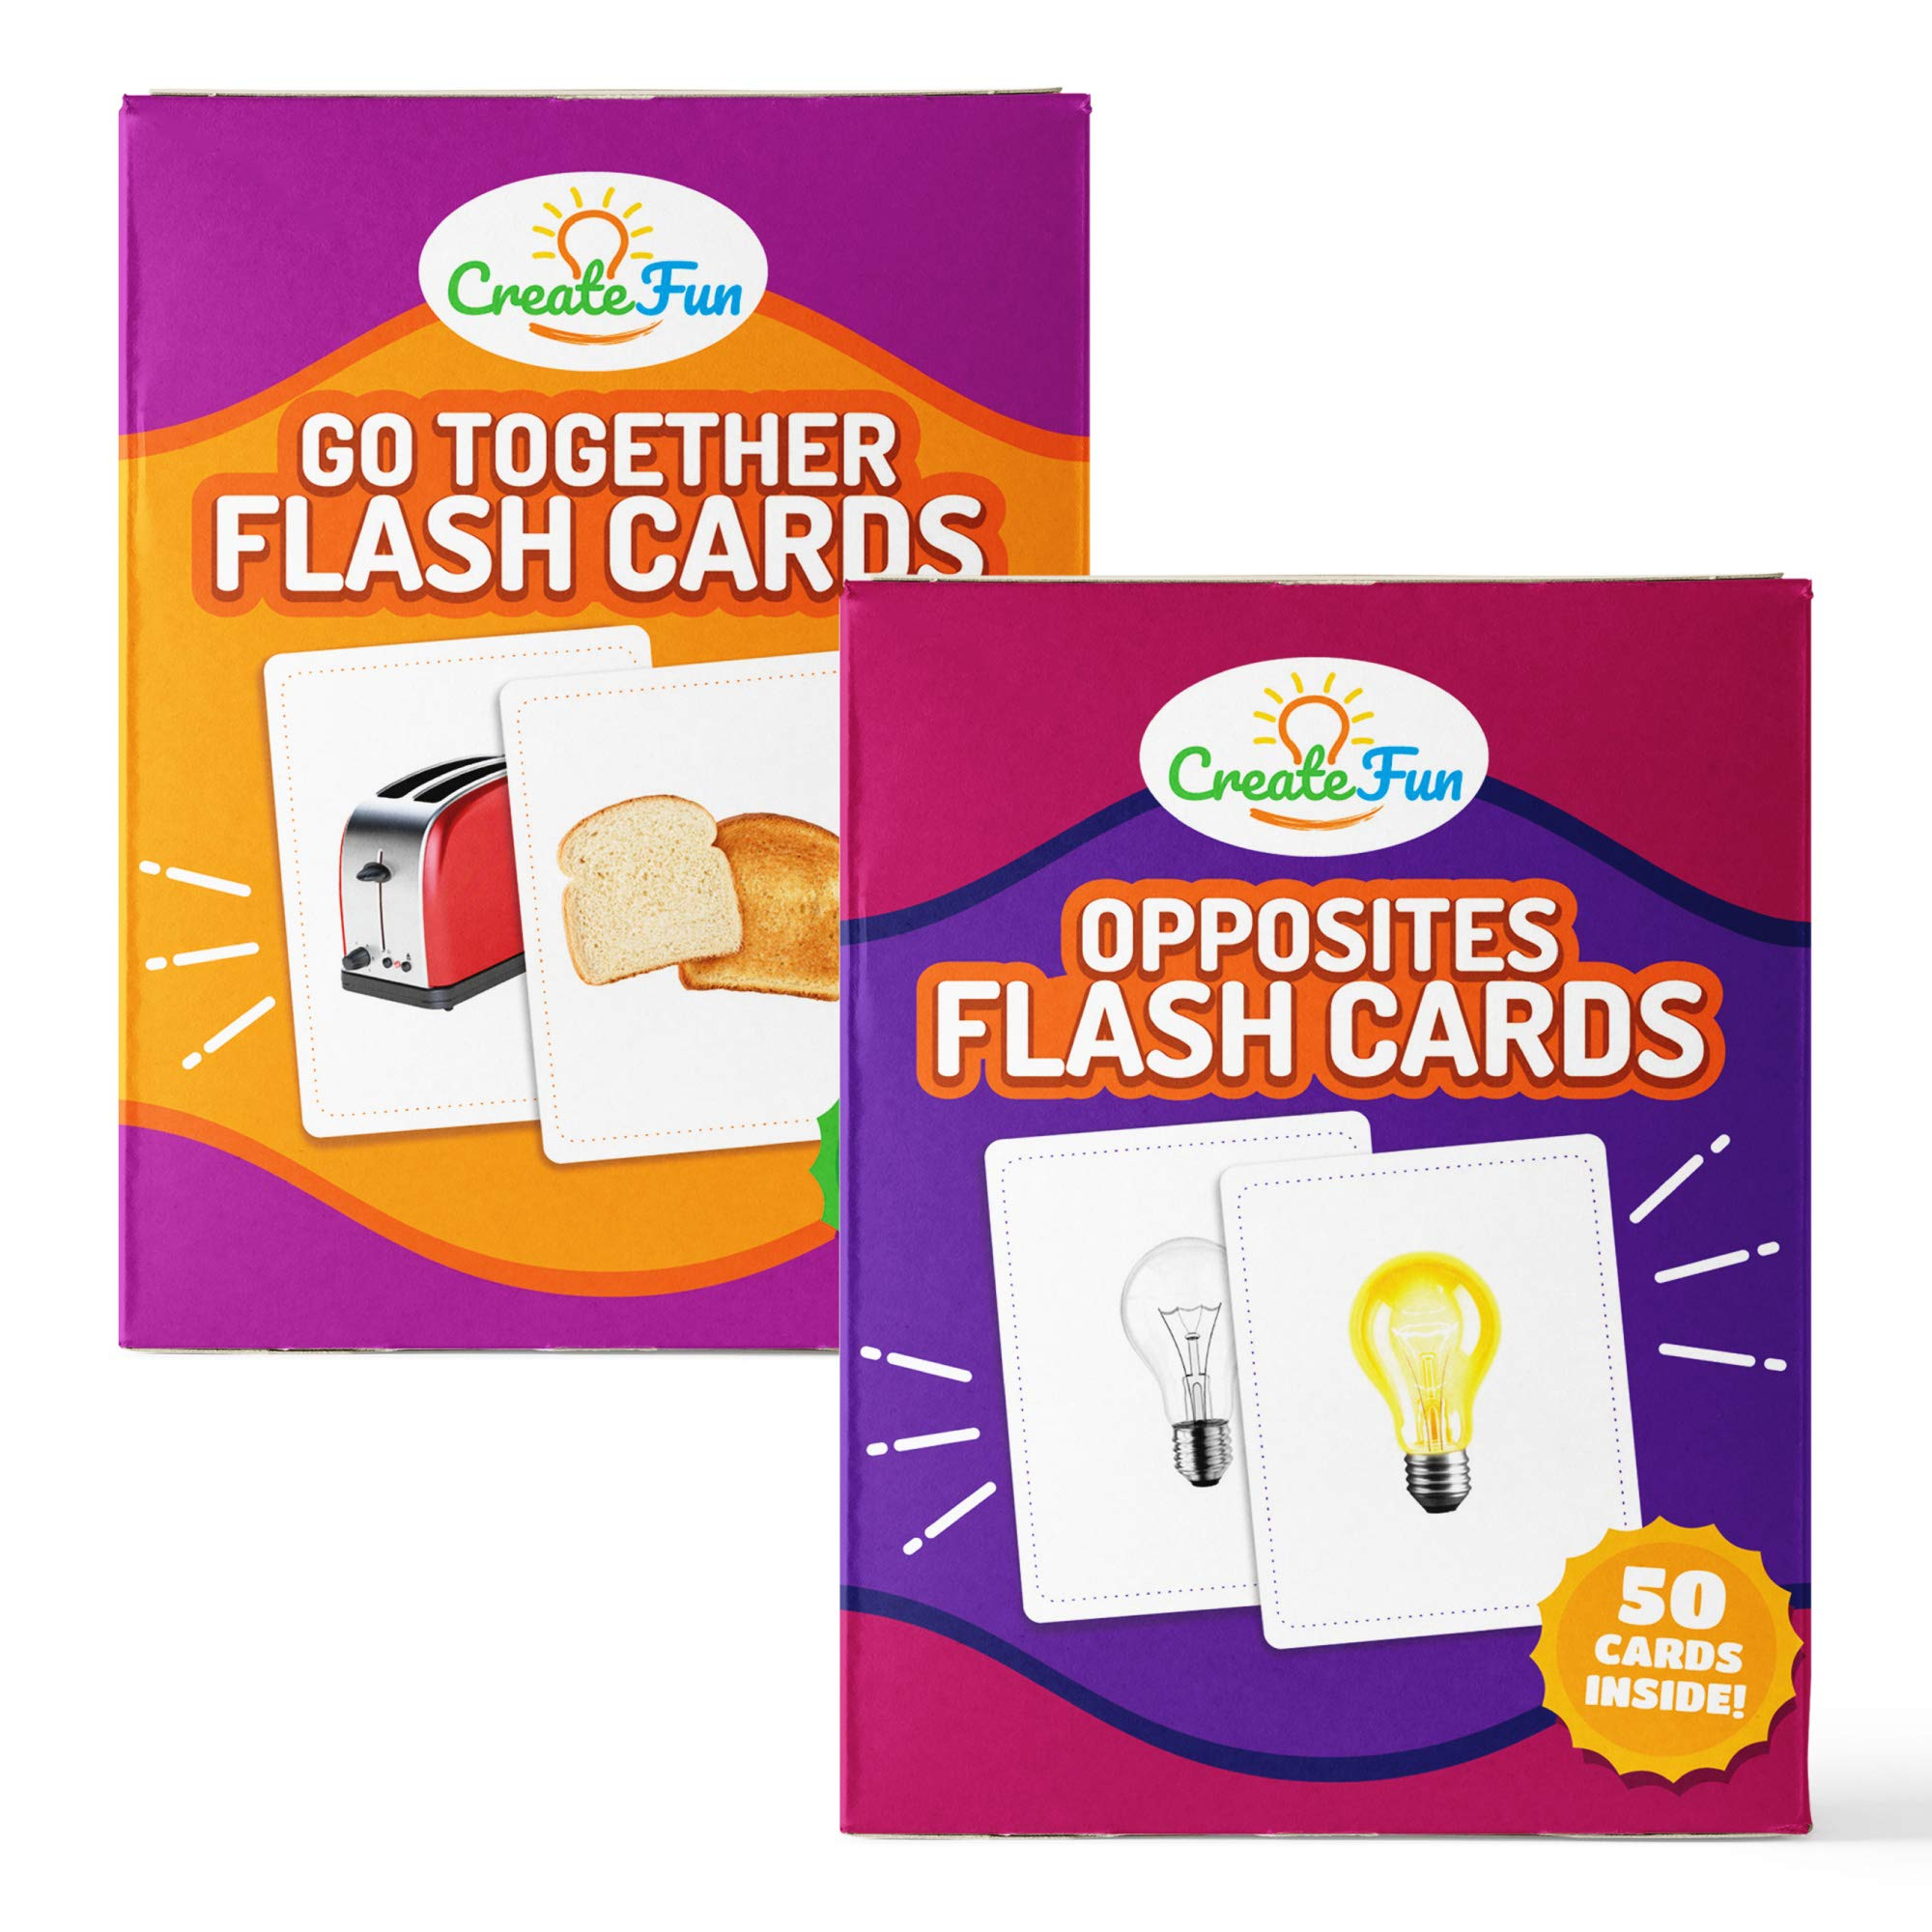 Go Together and Opposites Flash Cards Gift Set | 100 Matching Educational Photo Cards | 7 Starter Learning Games | For Your Classroom, Parents, Speech Therapy Materials and ESL Teaching Materials by CreateFun